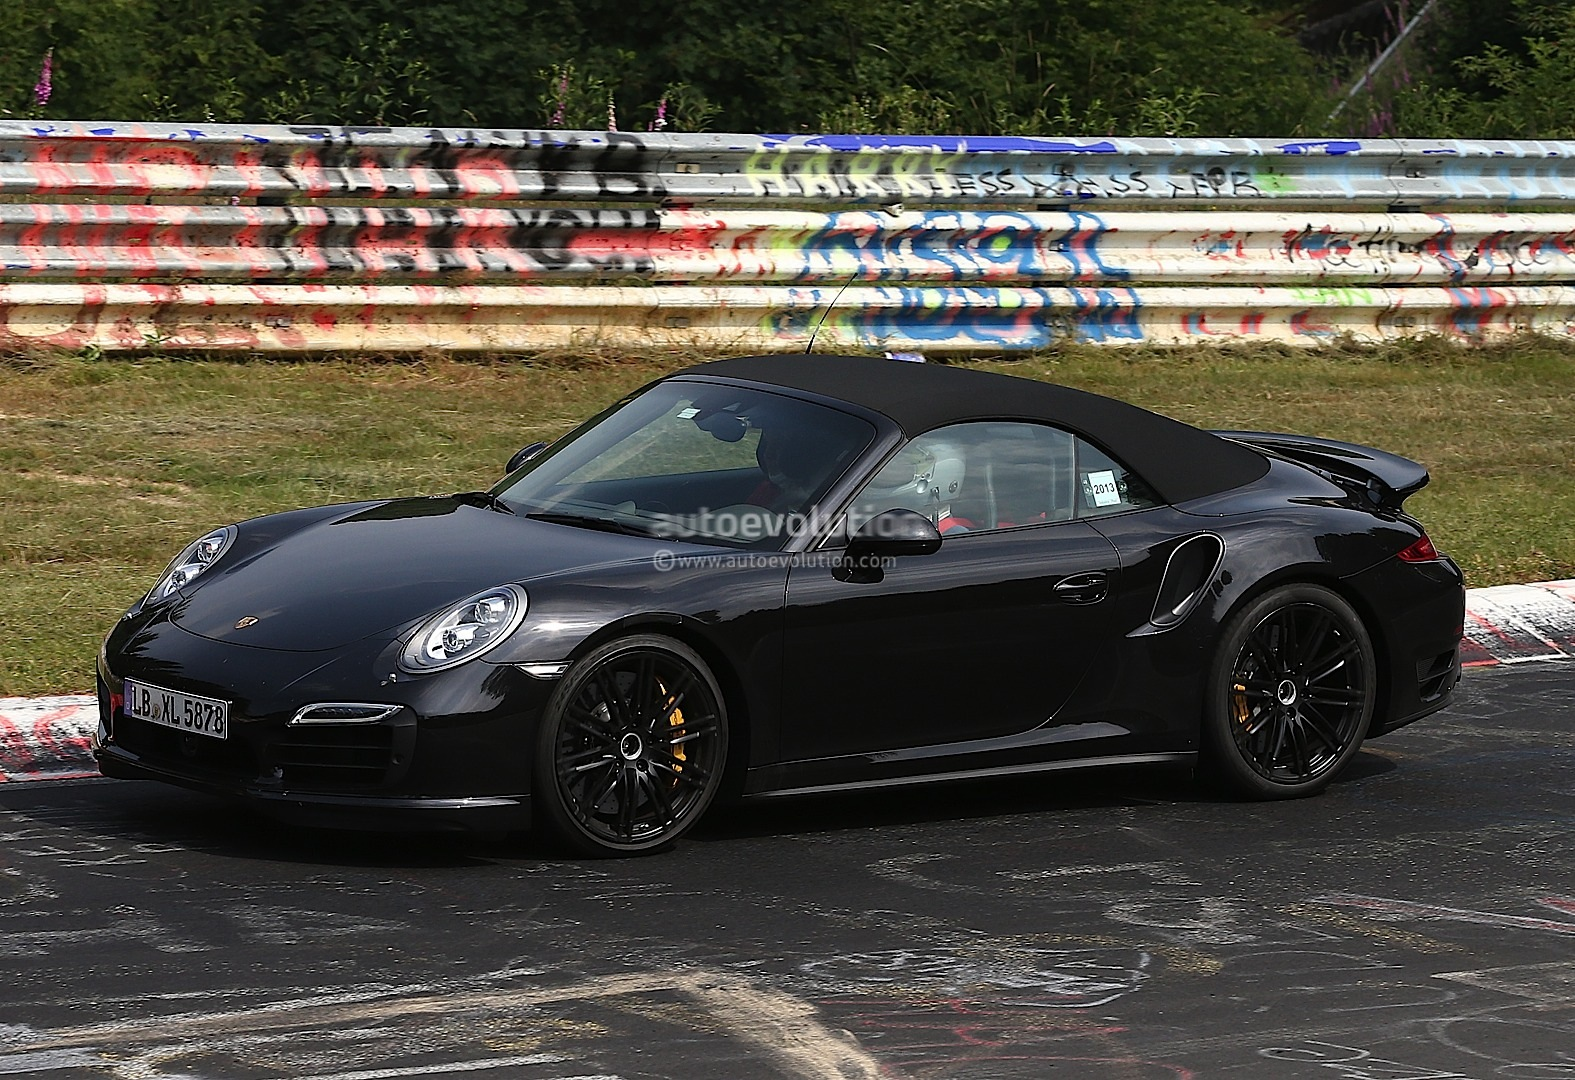 spyshots 2014 porsche 911 turbo cabriolet laps the nurburgring